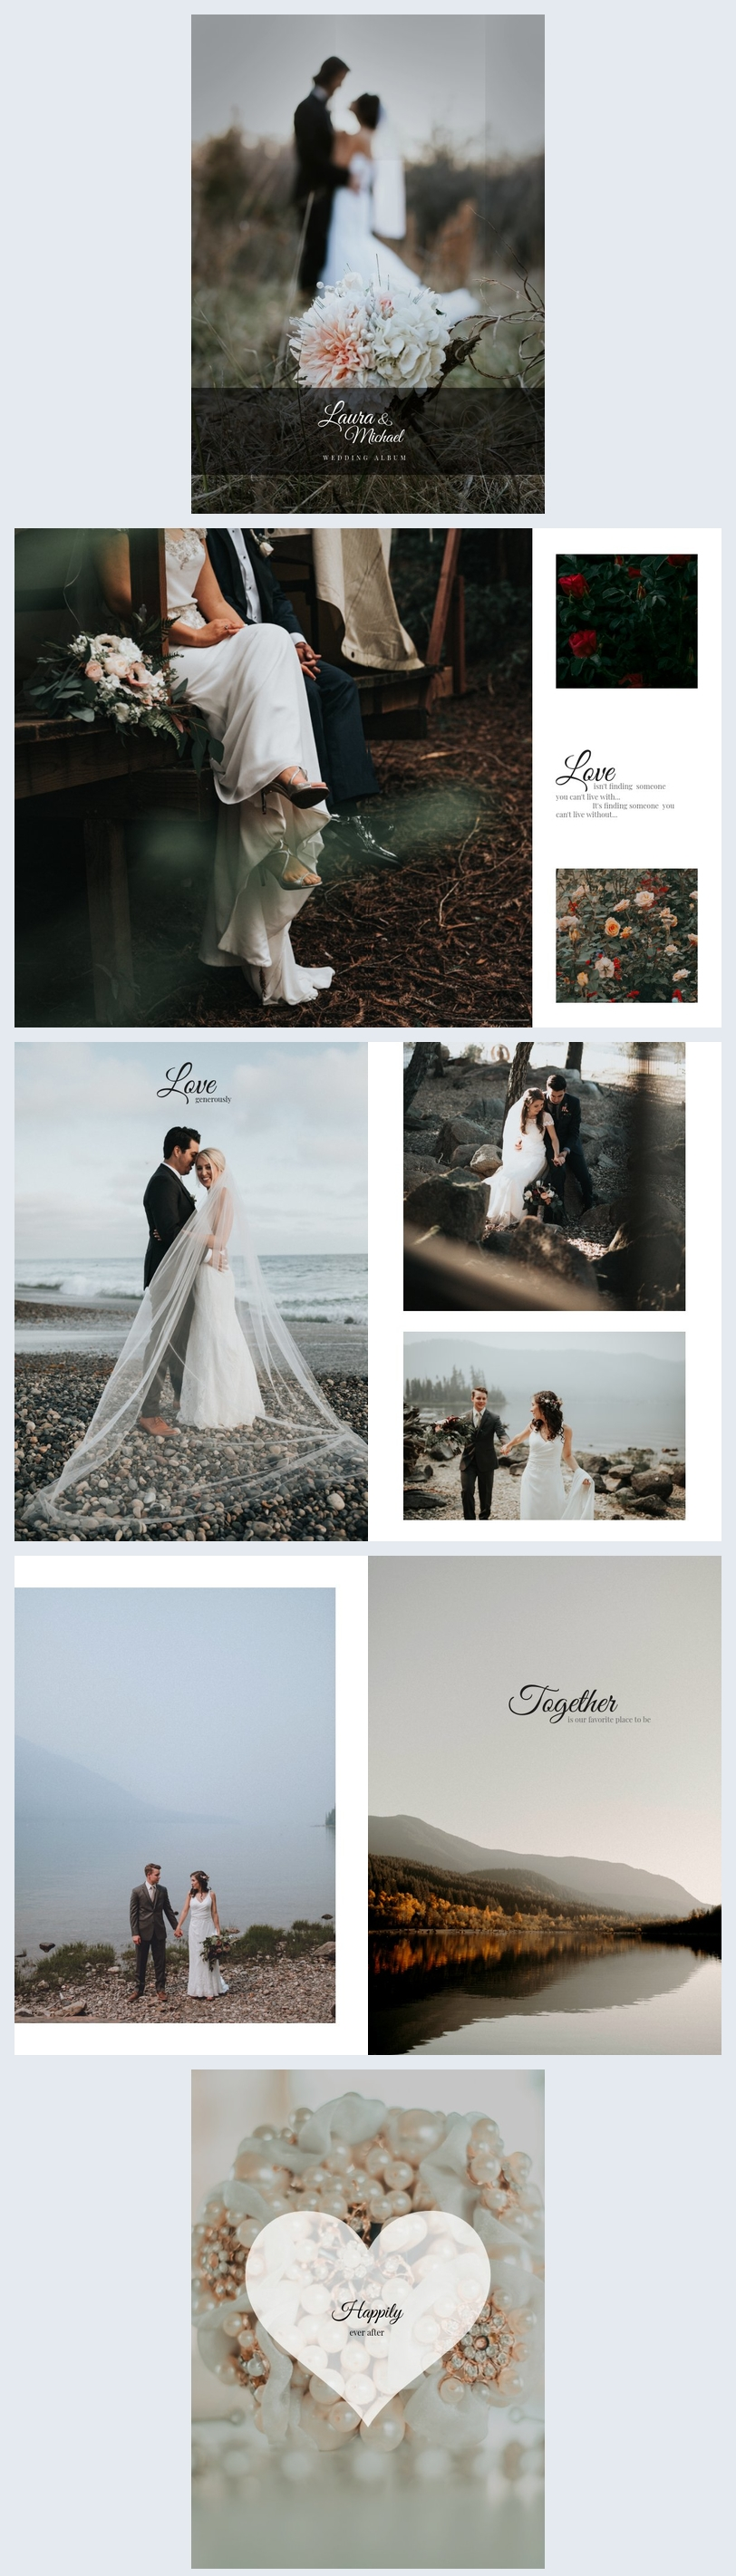 Minimalistic Wedding Photo Book Template